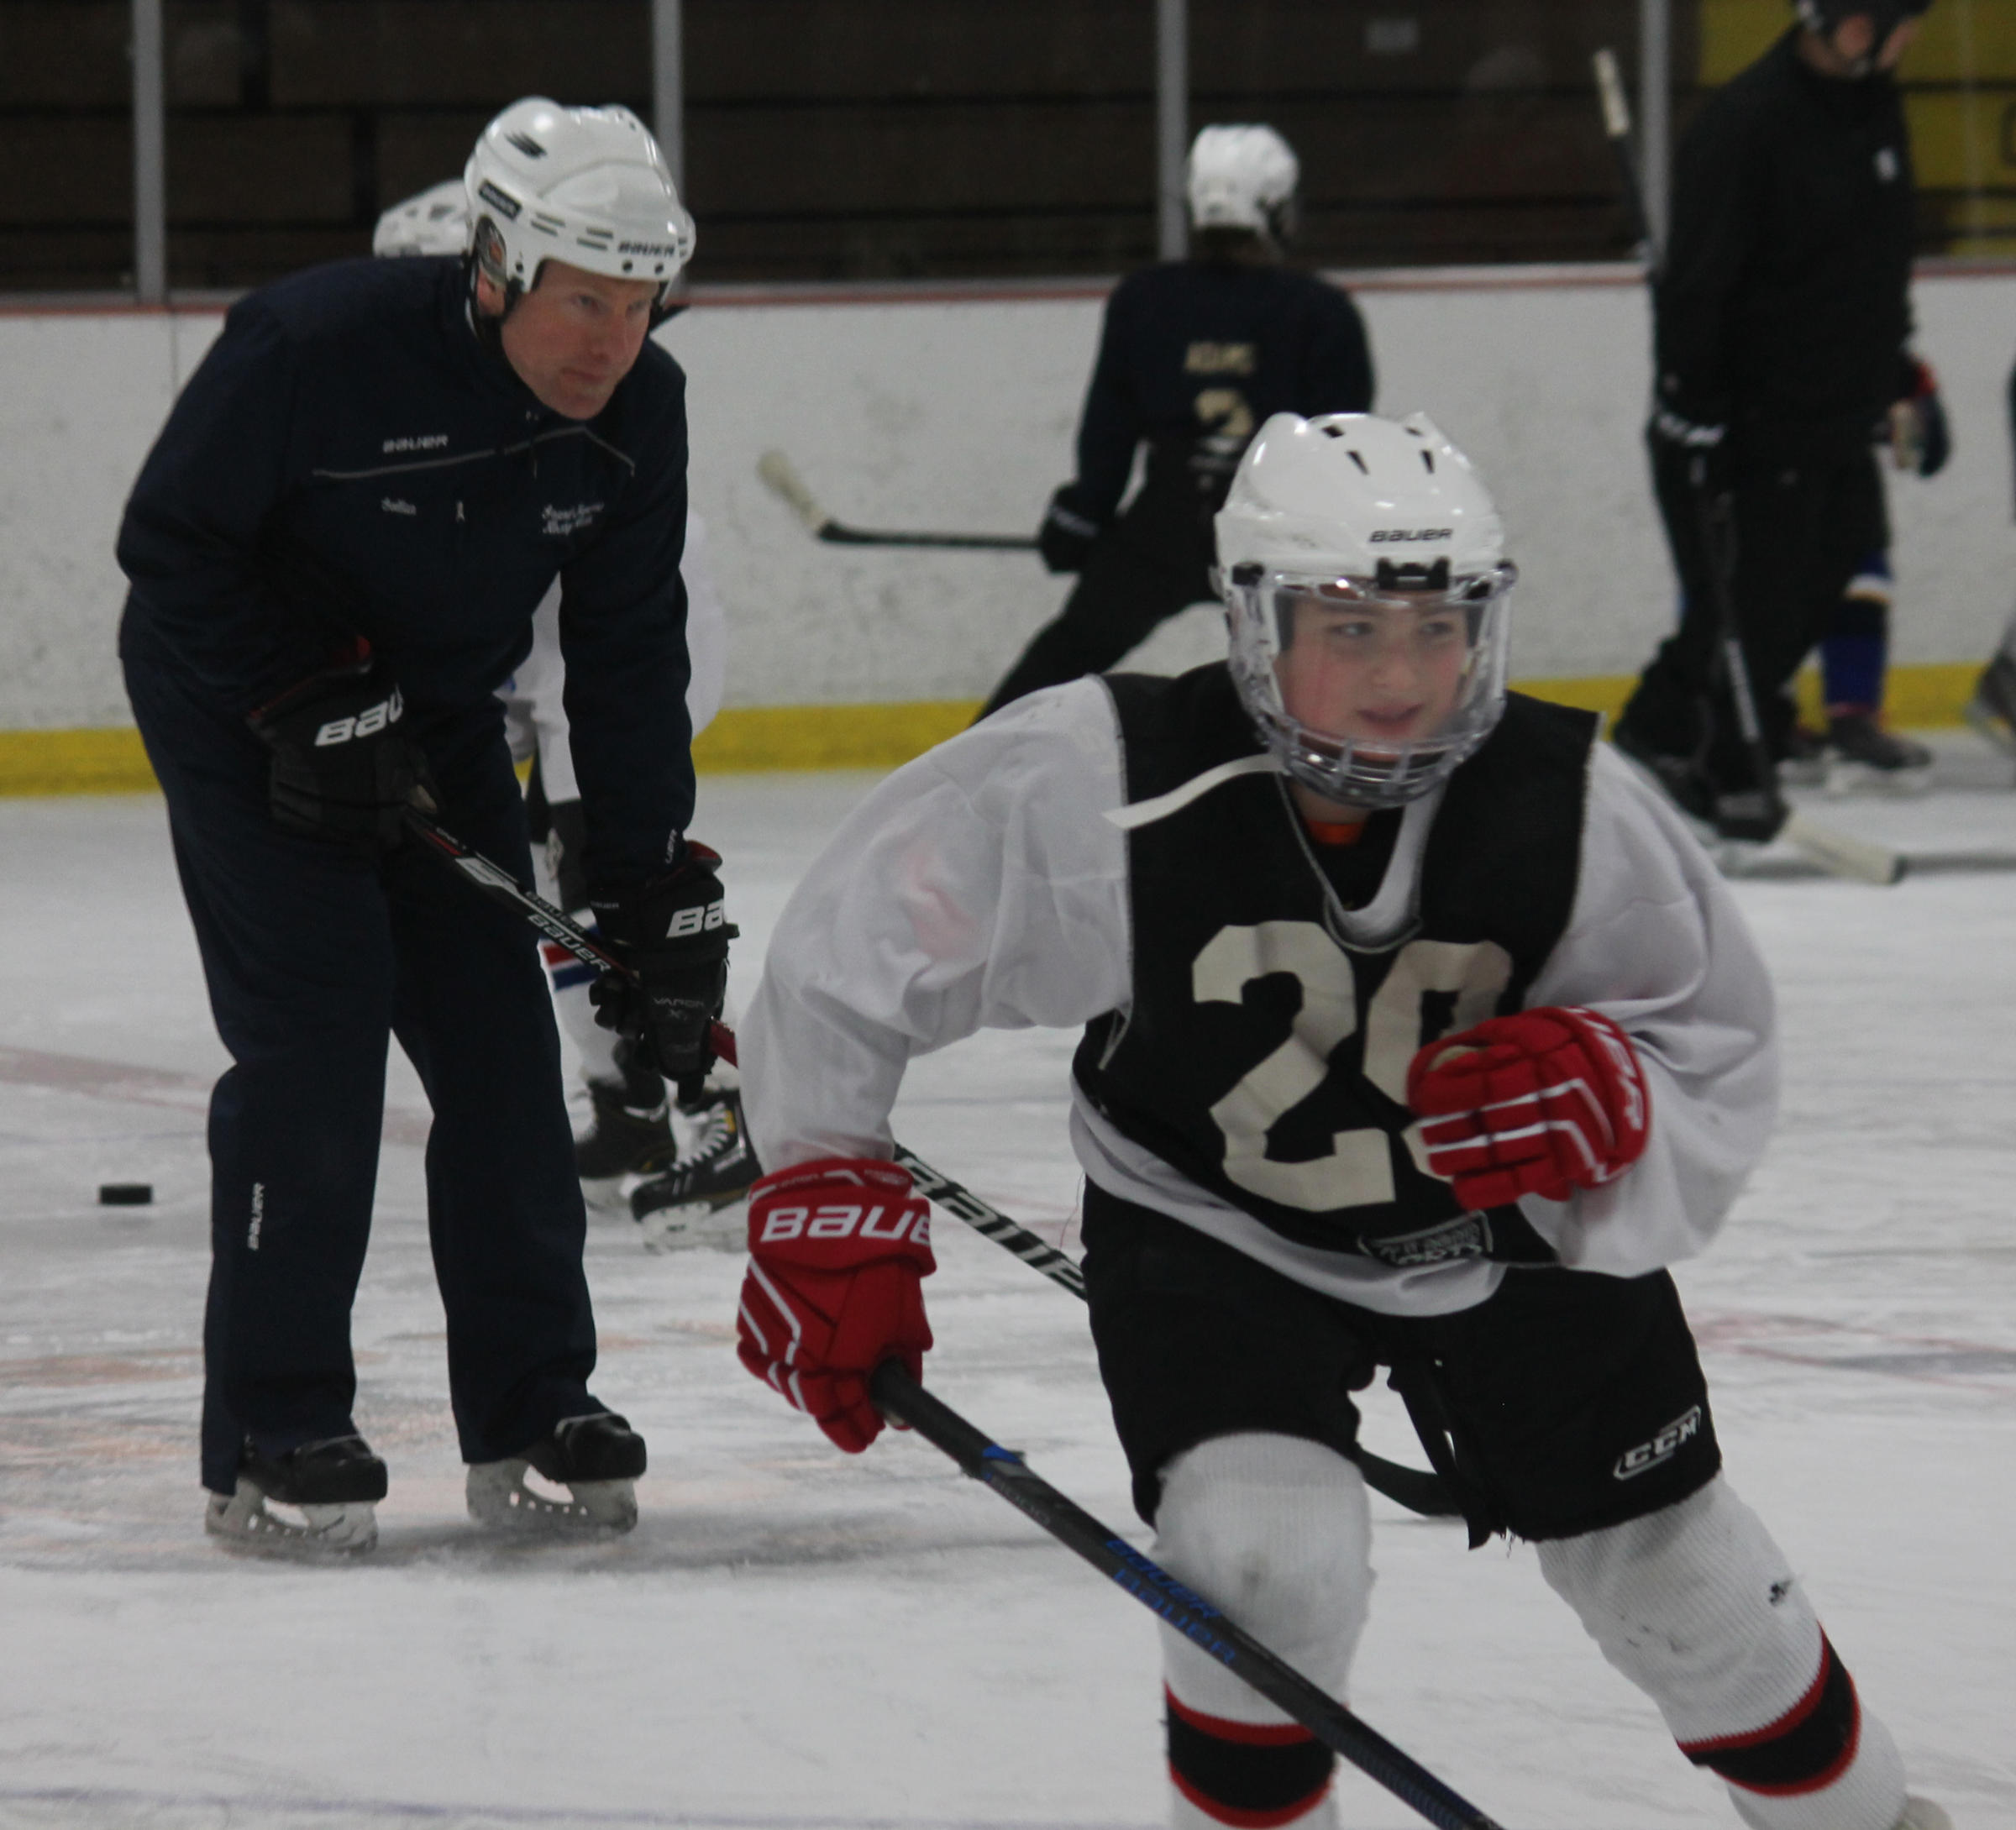 images How to Become a Hockey Coach